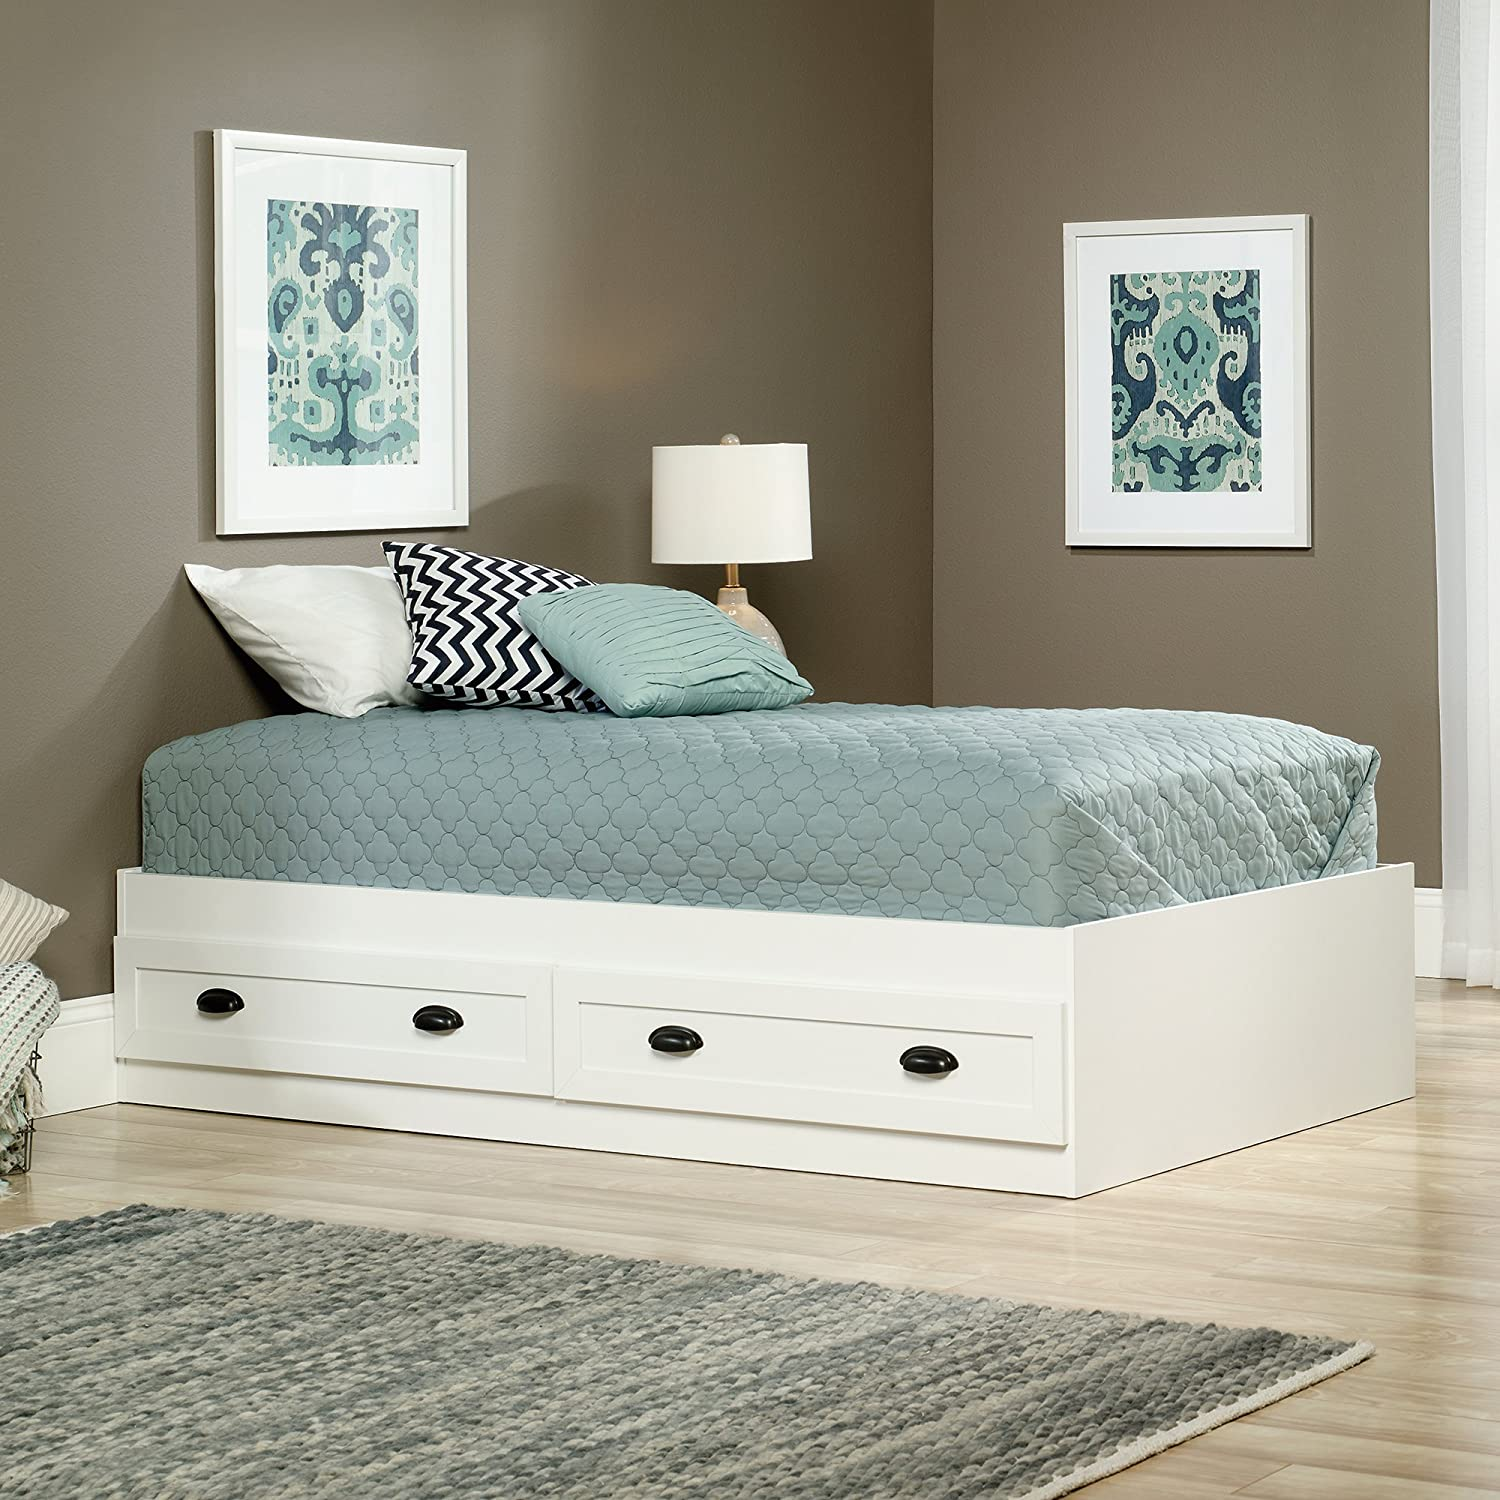 full twin large bed size drawers with of frame bedroom underbed storage platform underneath